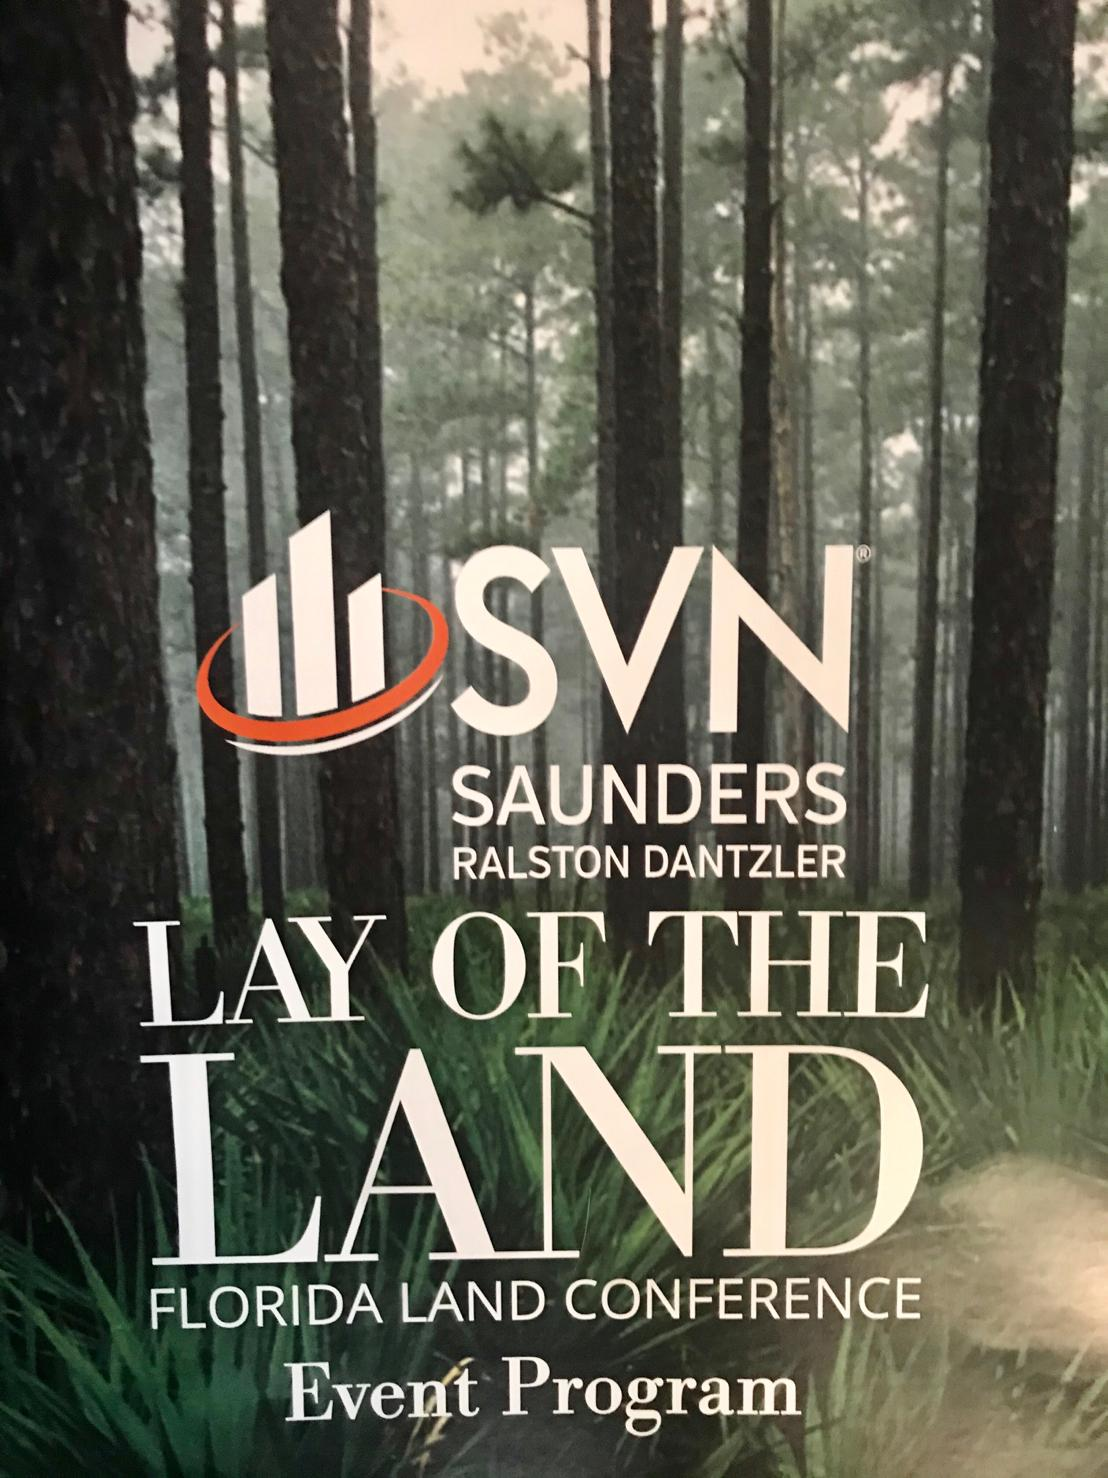 Gaylord Merlin Sponsors 2020 Lay of the Land Conference